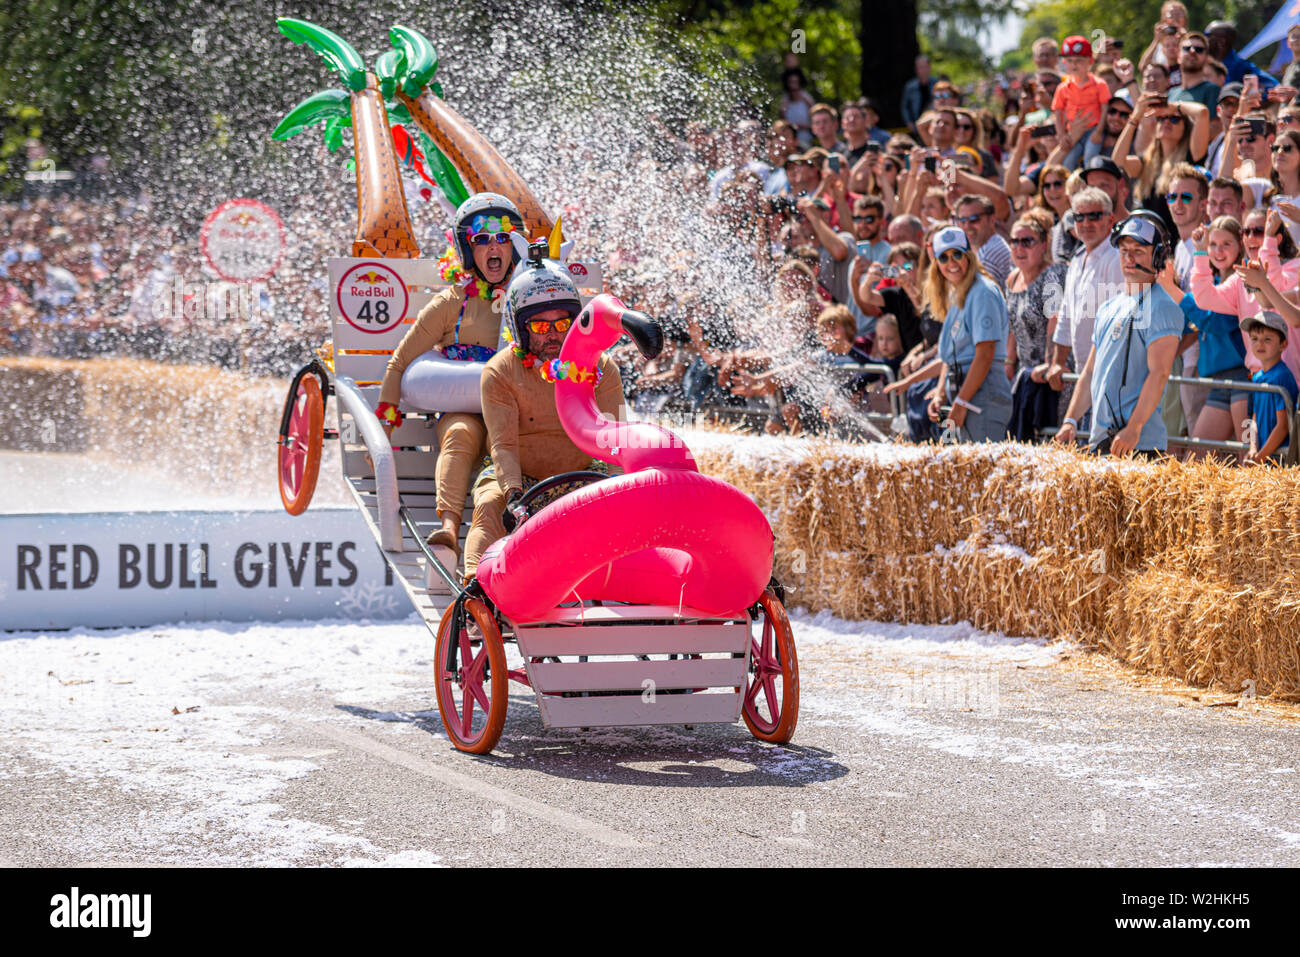 The Honeymooners competing in the Red Bull Soapbox Race 2019 at Alexandra Park, London, UK. Jumping over ramp with people - Stock Image